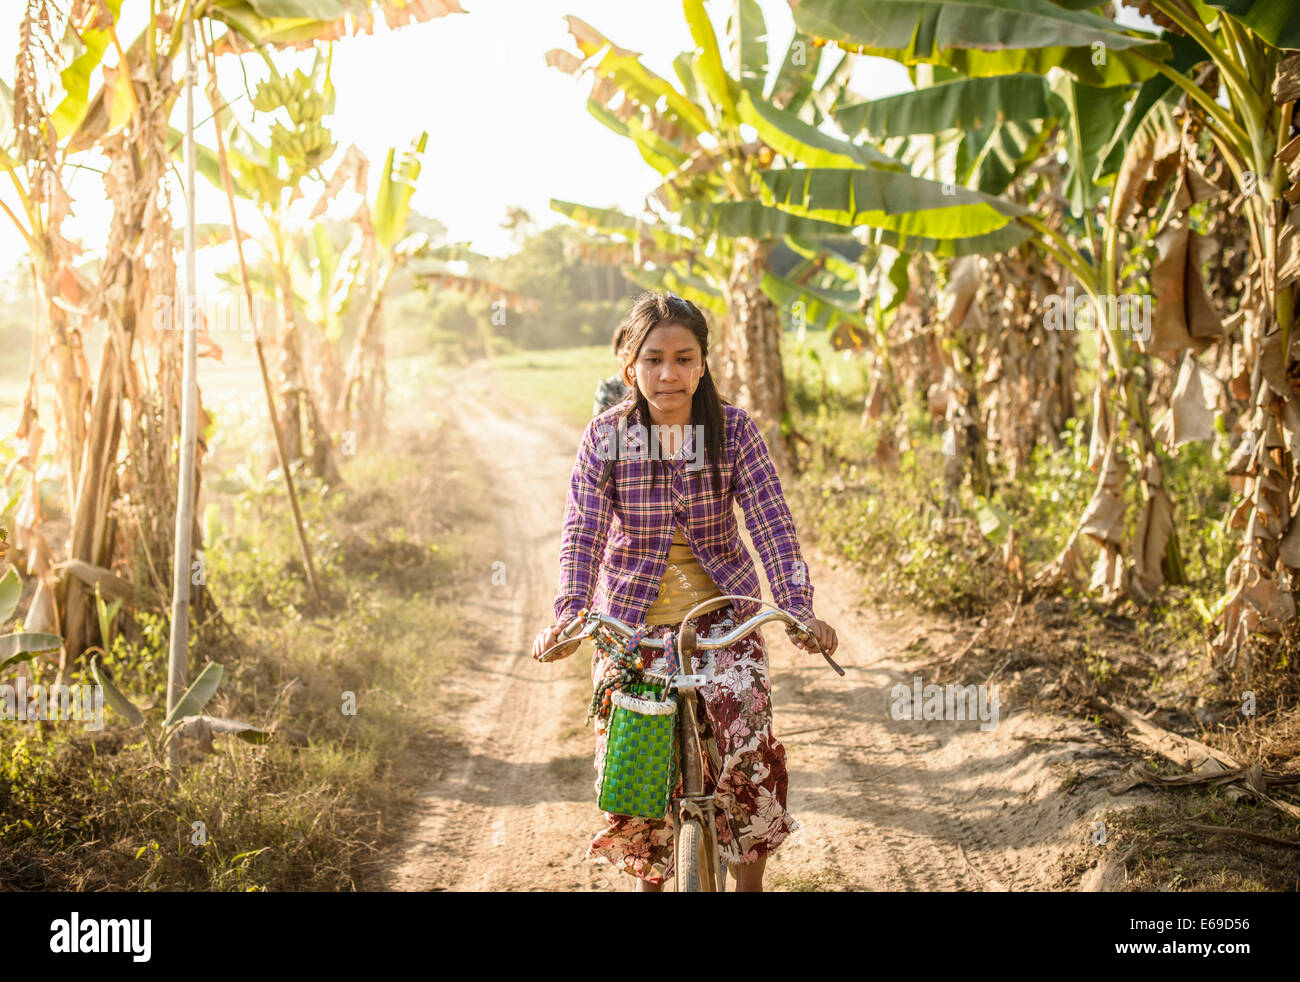 Asian woman riding bicycle on rural road Foto de stock